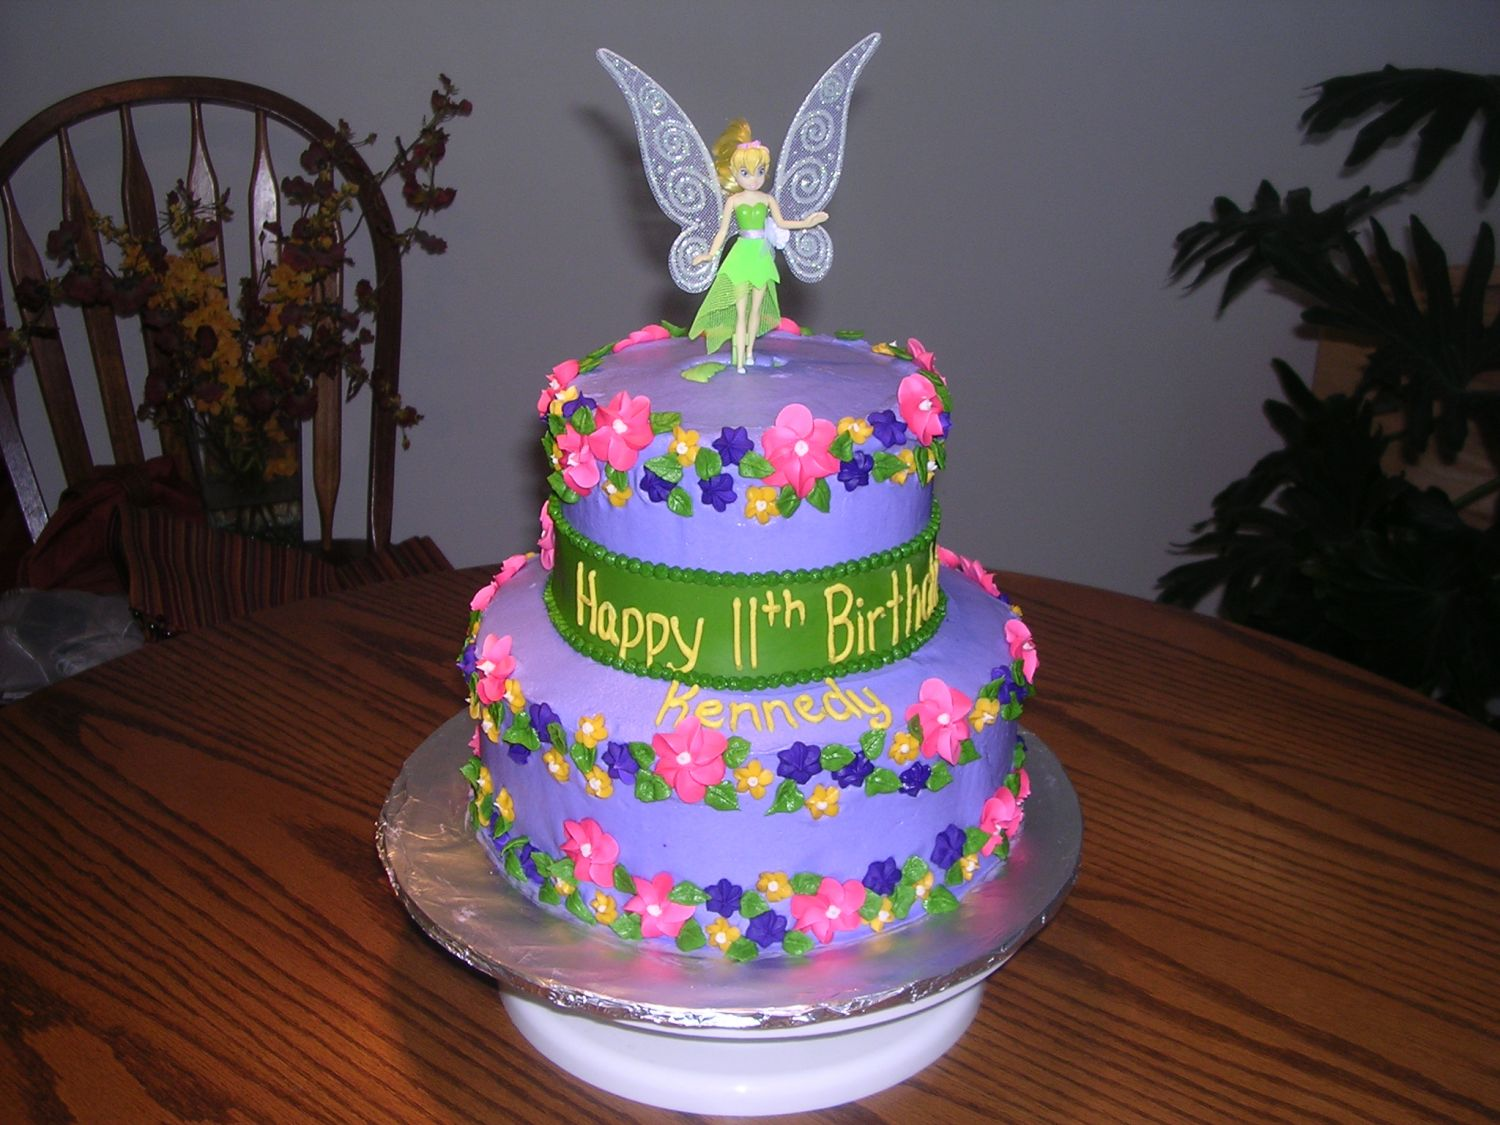 Cake Designs Ideas cake decorating ideas Photo Of Tinkerbell Cakes